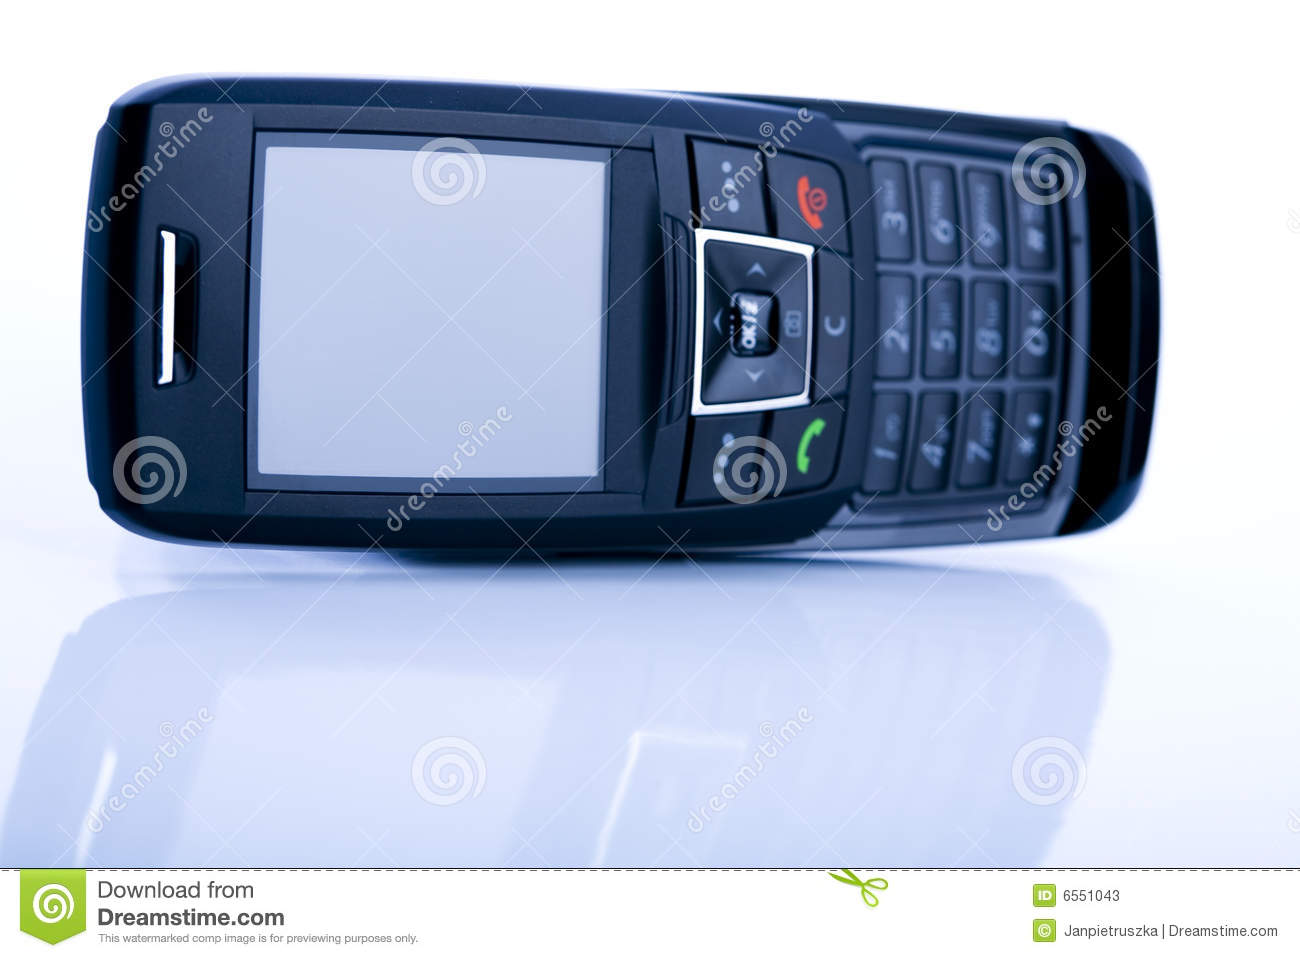 Gsm,phone stock image  Image of business, crystal, equipment - 6551043